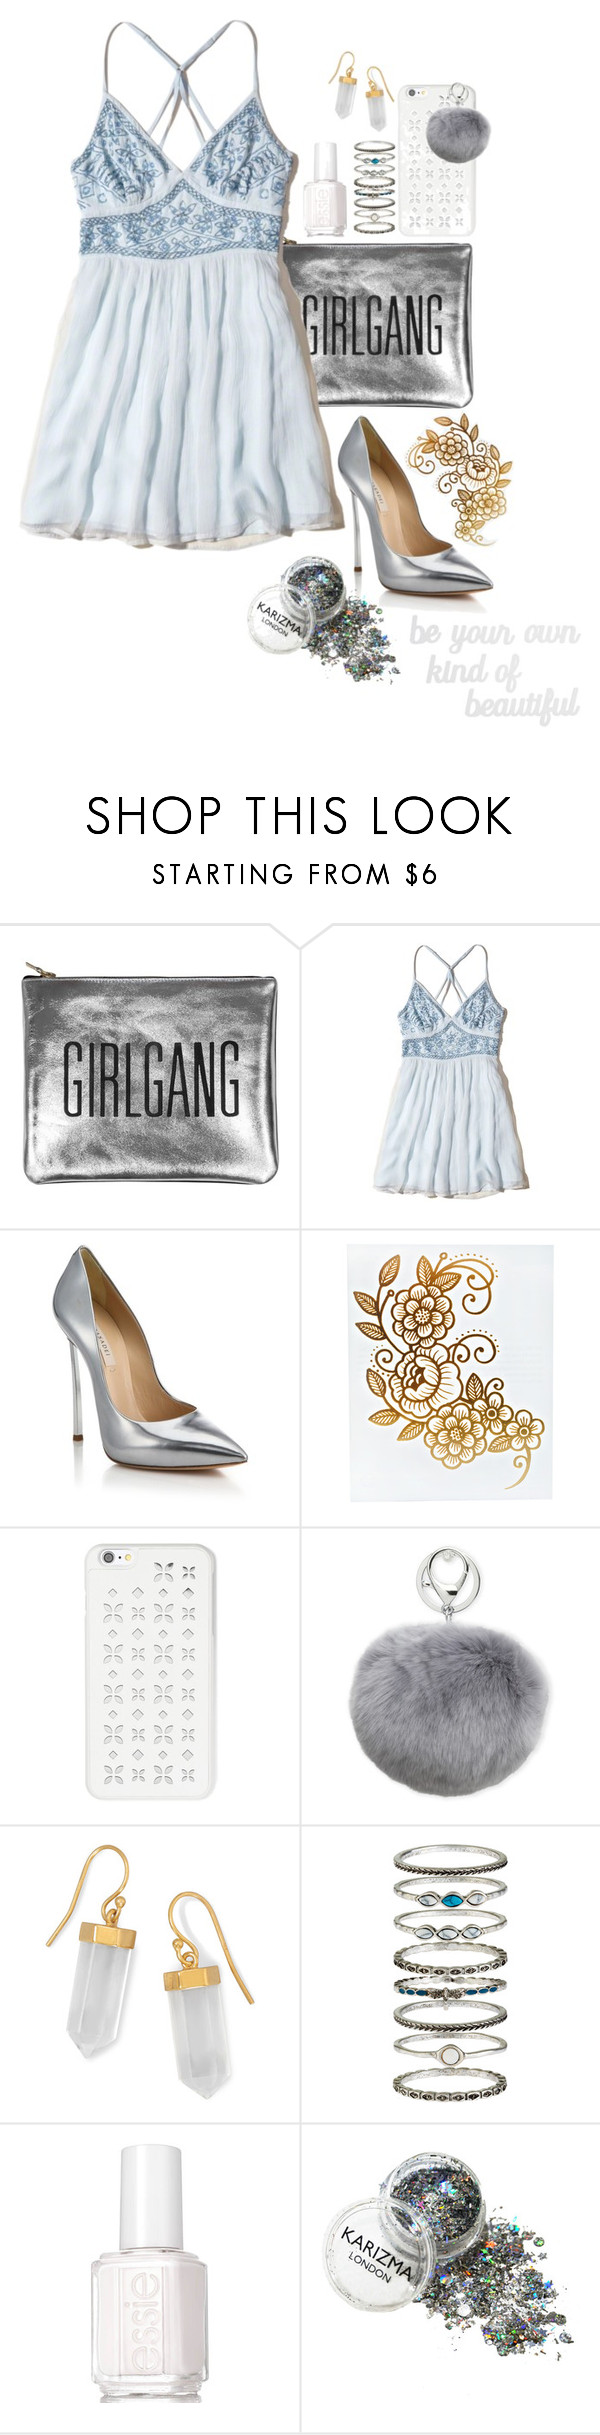 """""""I've Had Enough Of Crying ♥"""" by shyanimallover5 ❤ liked on Polyvore featuring Sarah Baily, Hollister Co., Casadei, MICHAEL Michael Kors, Adrienne Landau, BillyTheTree, Accessorize, Essie and PBteen"""